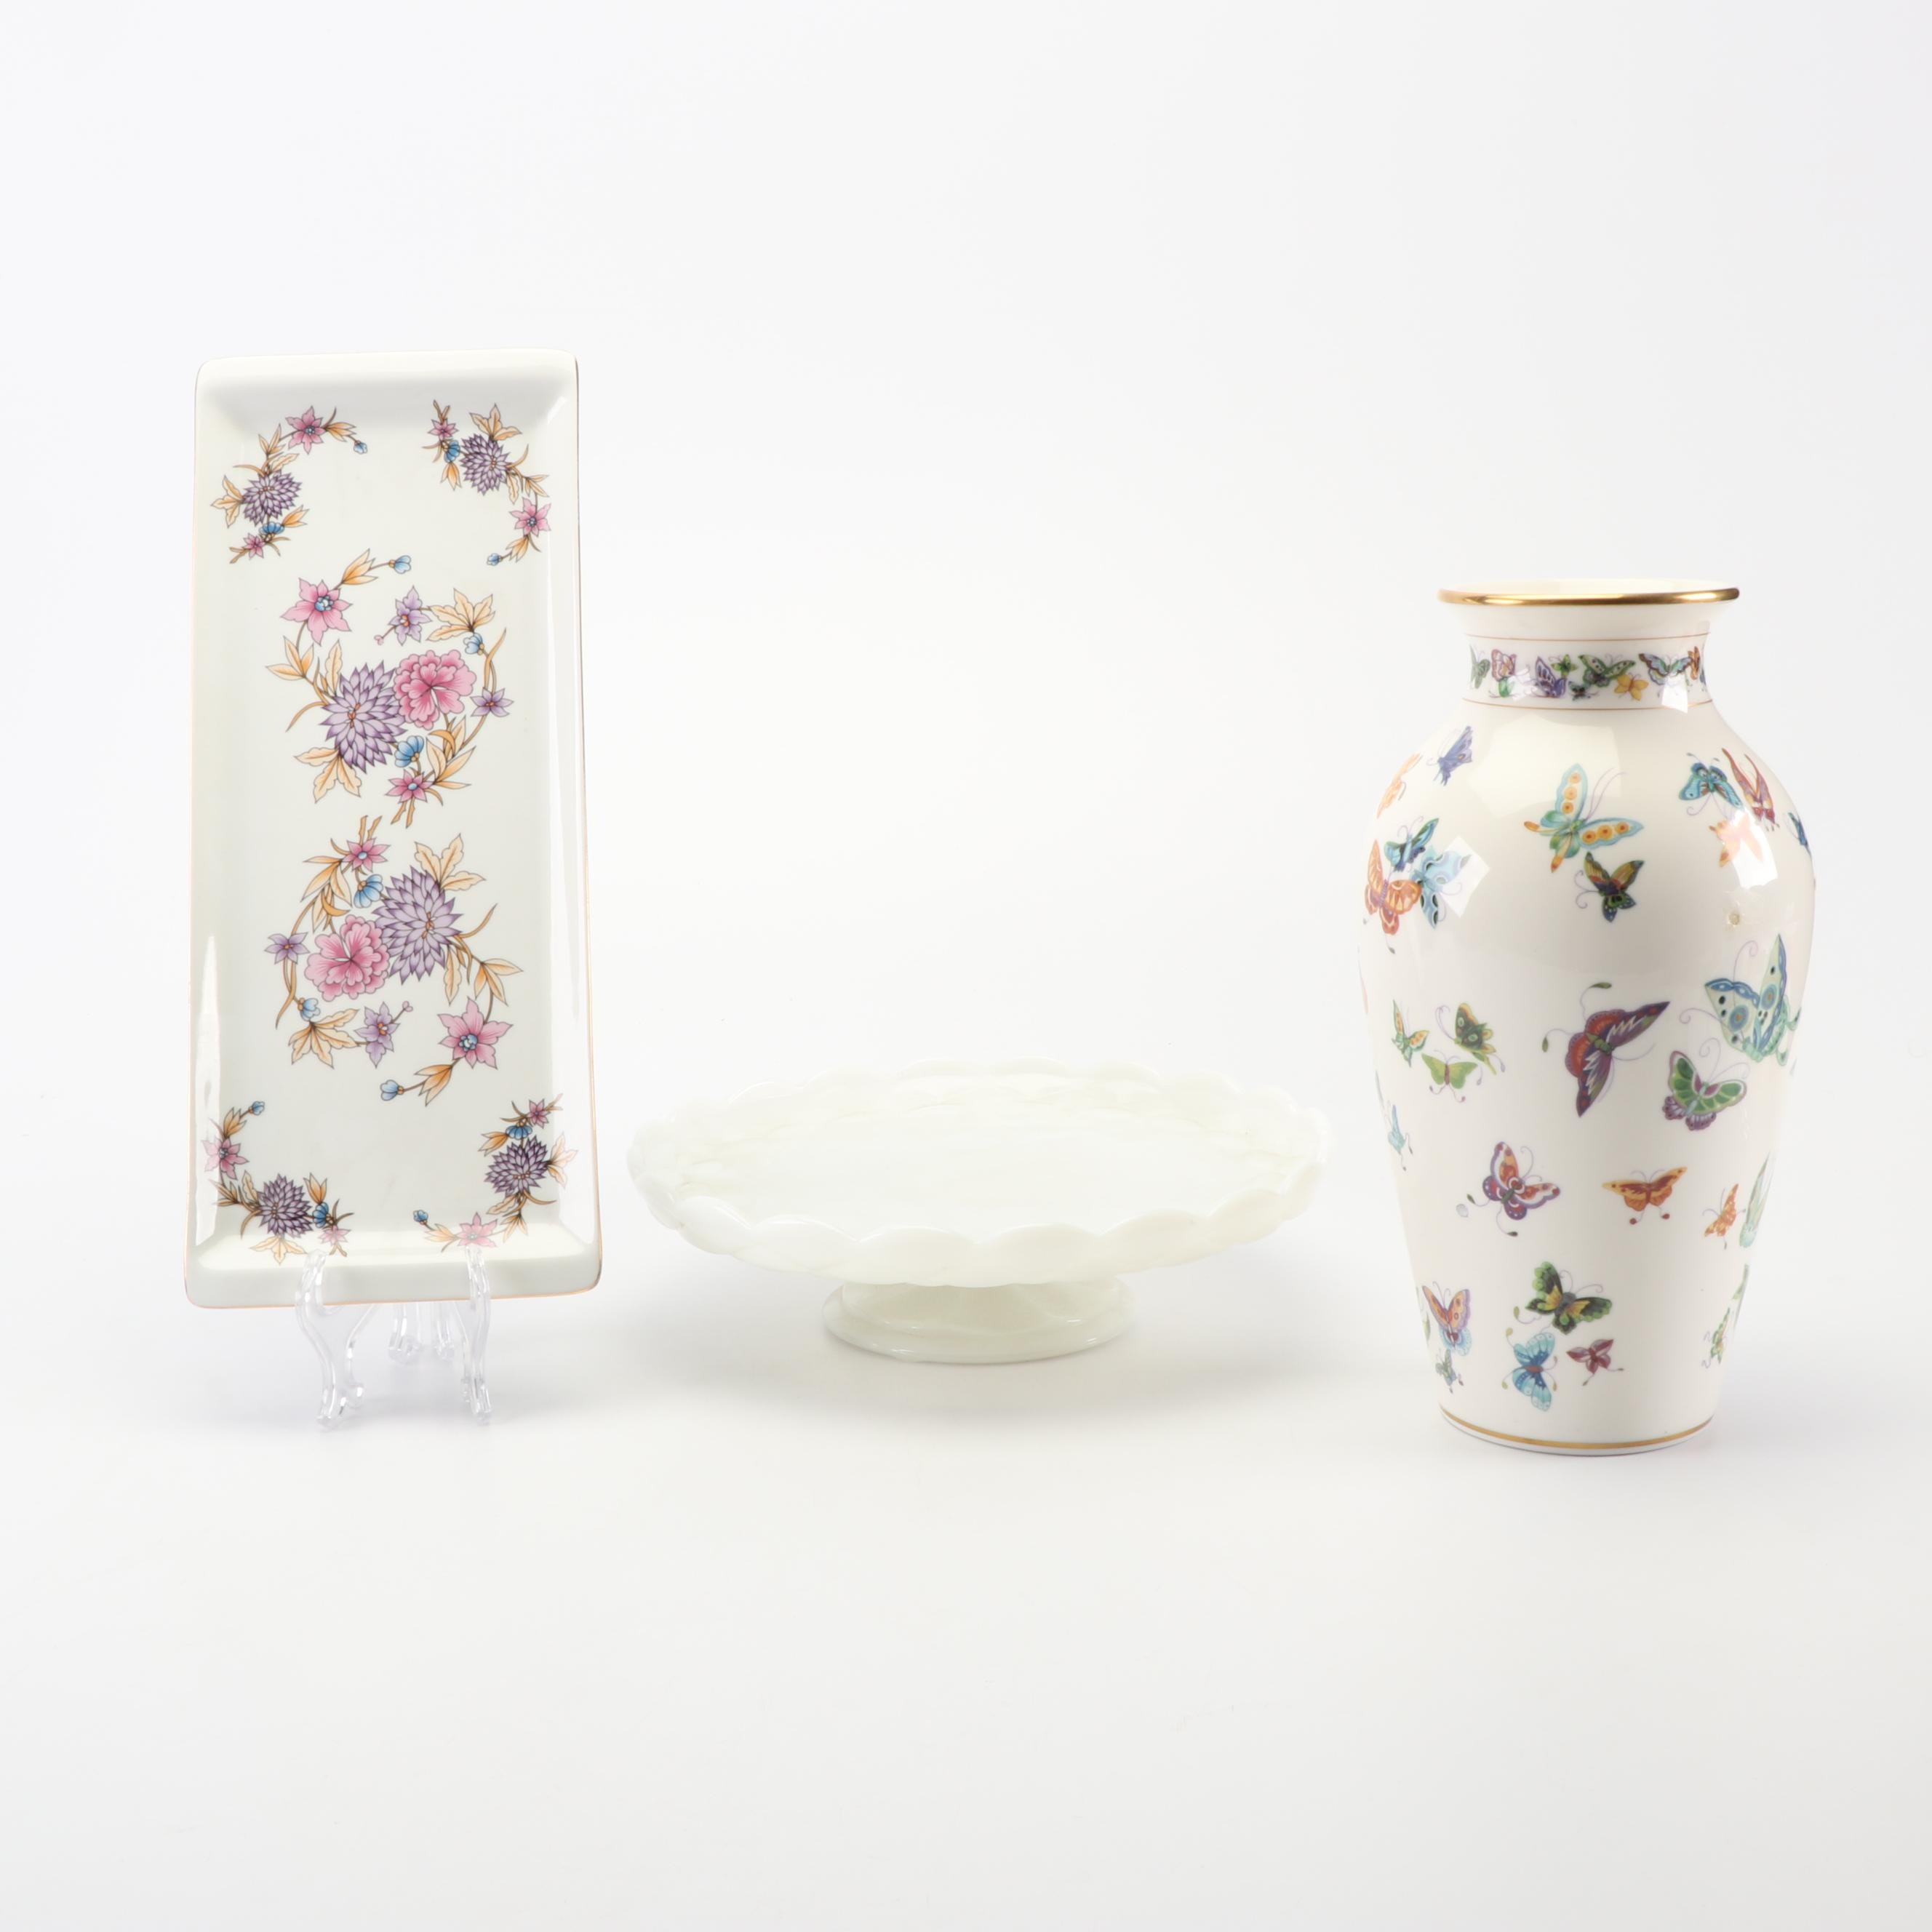 """Franklin Mint Porcelain """"The Vase of a Hundred Butterflies"""" and Serving Dishes"""